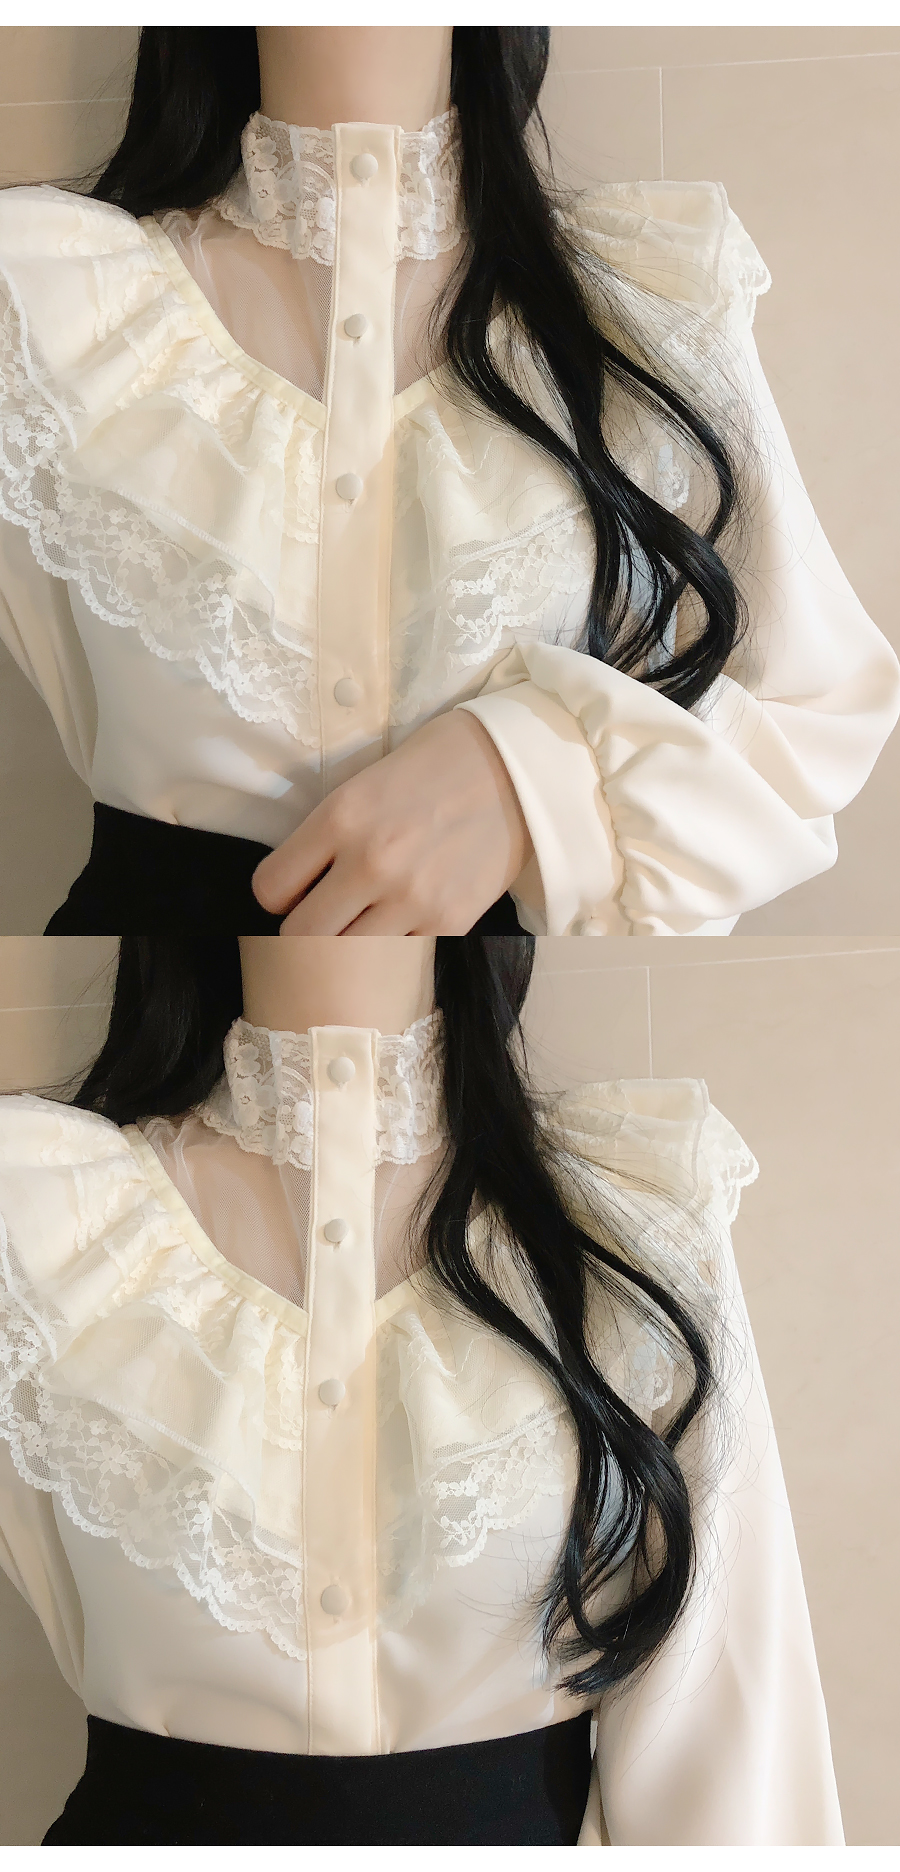 Saber lace frill blouse